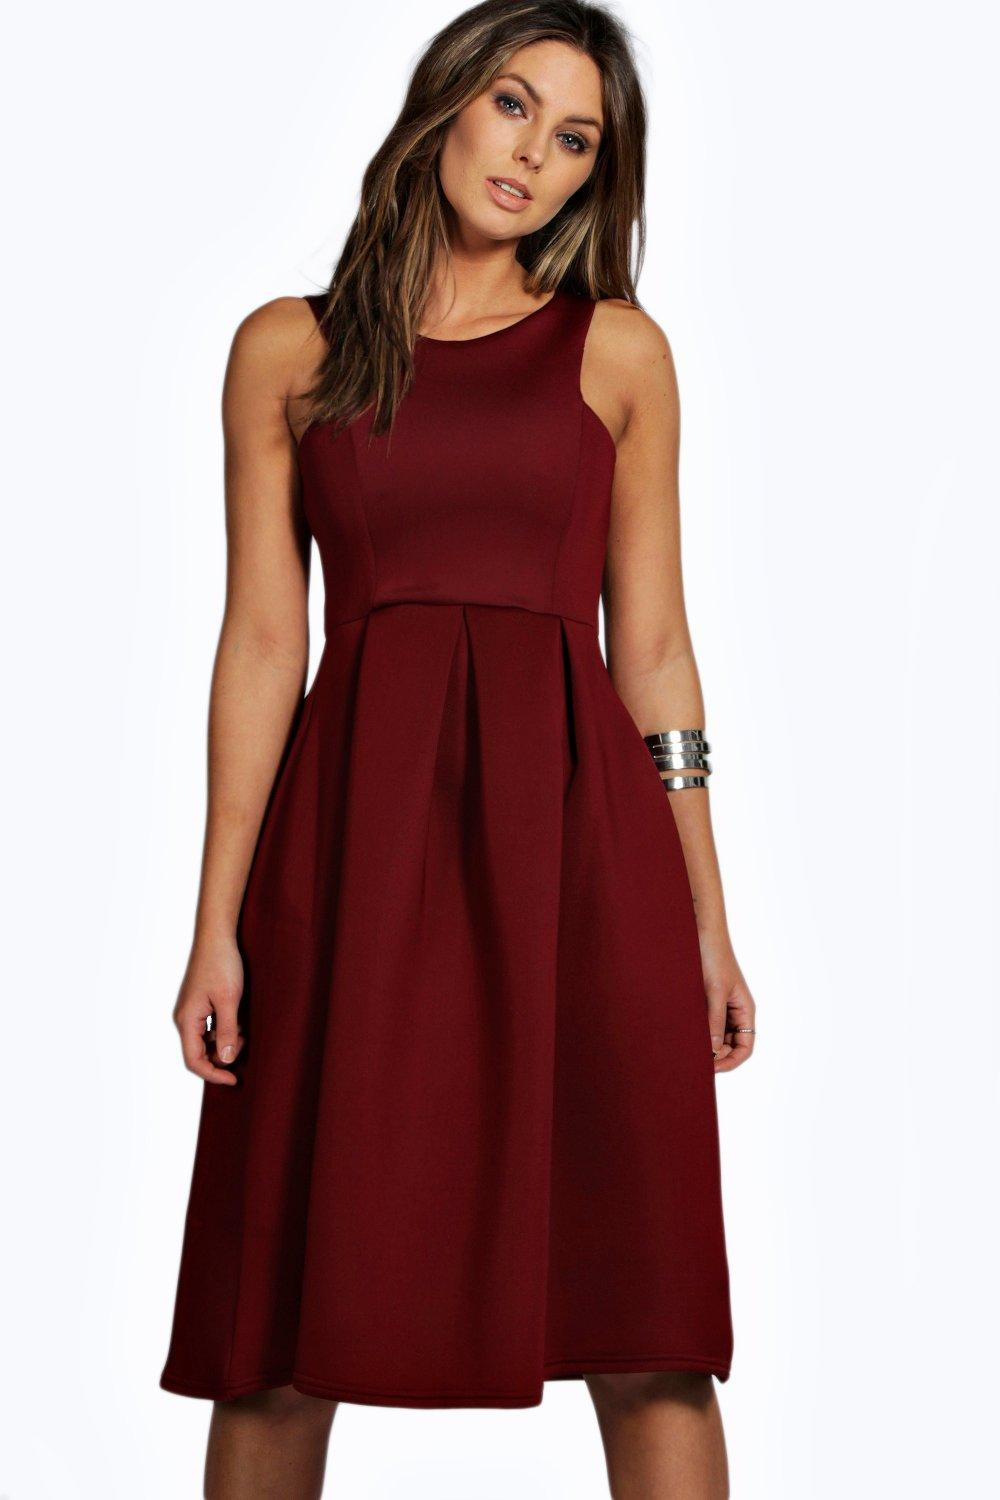 Scuba Cutaway Neckline Midi Dress Black - length: below the knee; neckline: round neck; pattern: plain; sleeve style: sleeveless; predominant colour: burgundy; fit: fitted at waist & bust; style: fit & flare; fibres: polyester/polyamide - stretch; occasions: occasion; hip detail: subtle/flattering hip detail; sleeve length: sleeveless; pattern type: fabric; texture group: jersey - stretchy/drapey; season: s/s 2016; wardrobe: event